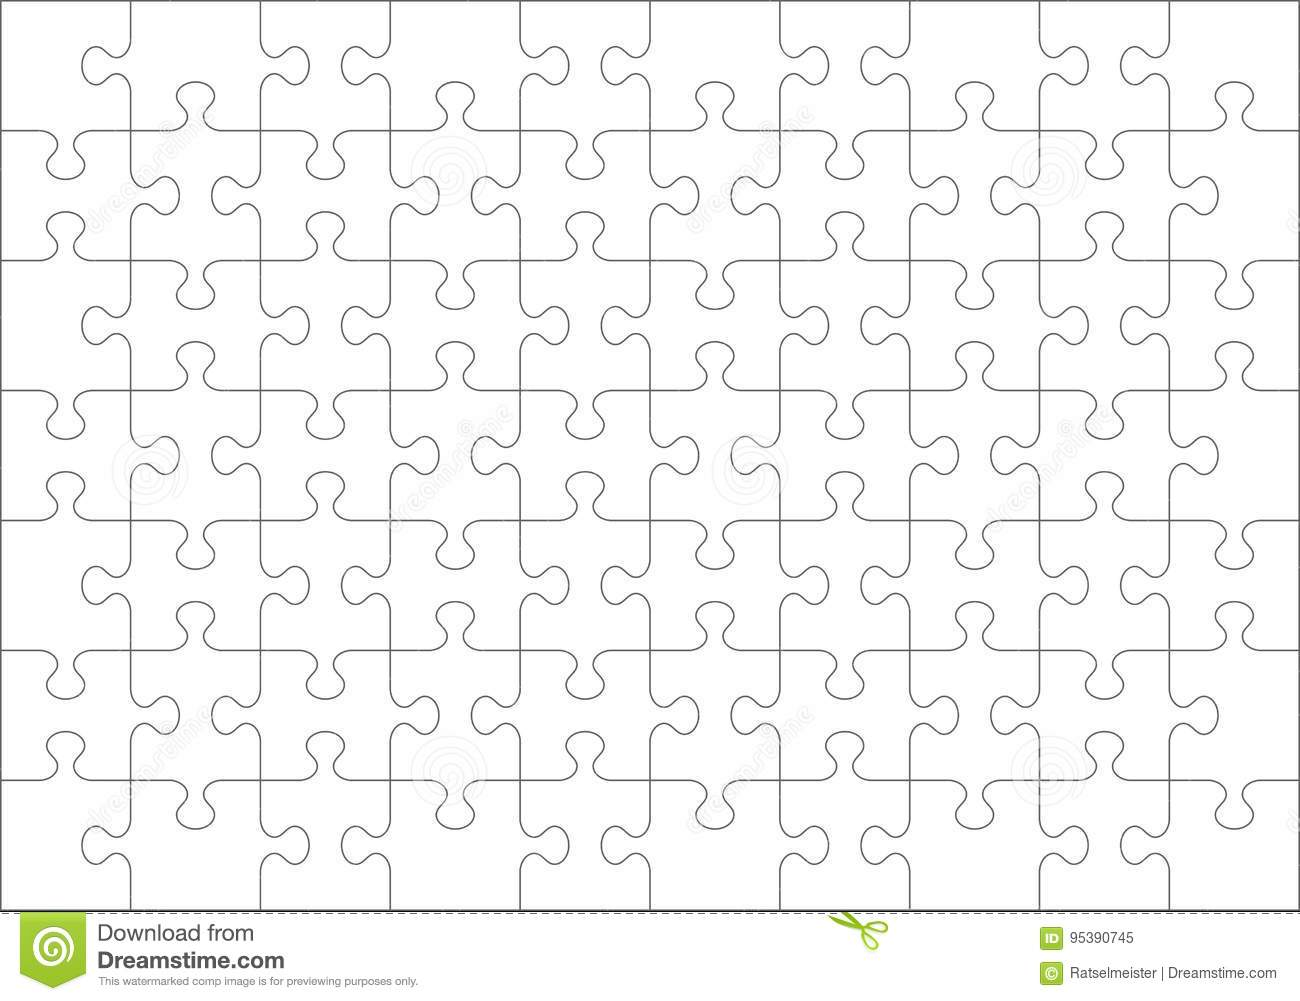 Jigsaw Puzzle Blank Template Of 70 Pieces Stock Vector